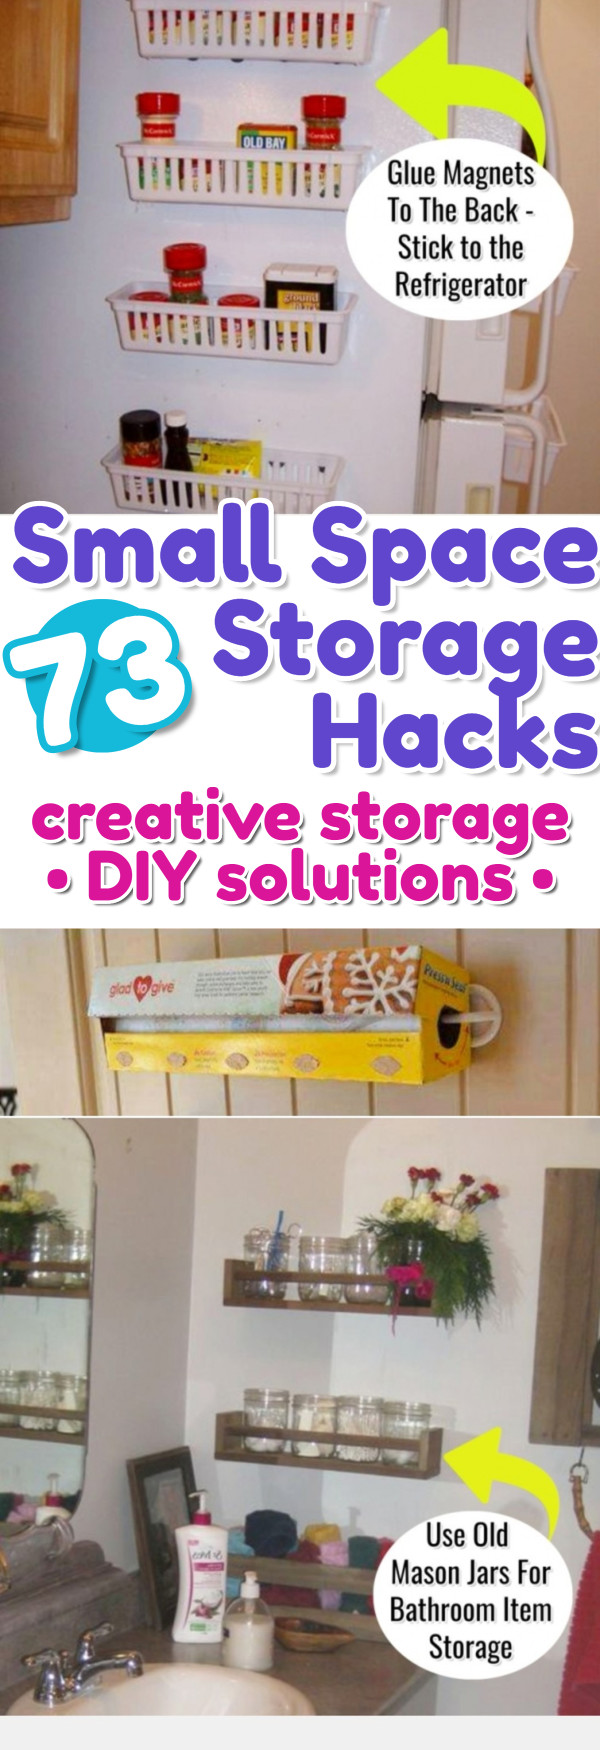 creative storage solutions for small spaces - declutteringyourlife Narrow Space Storage Solutions